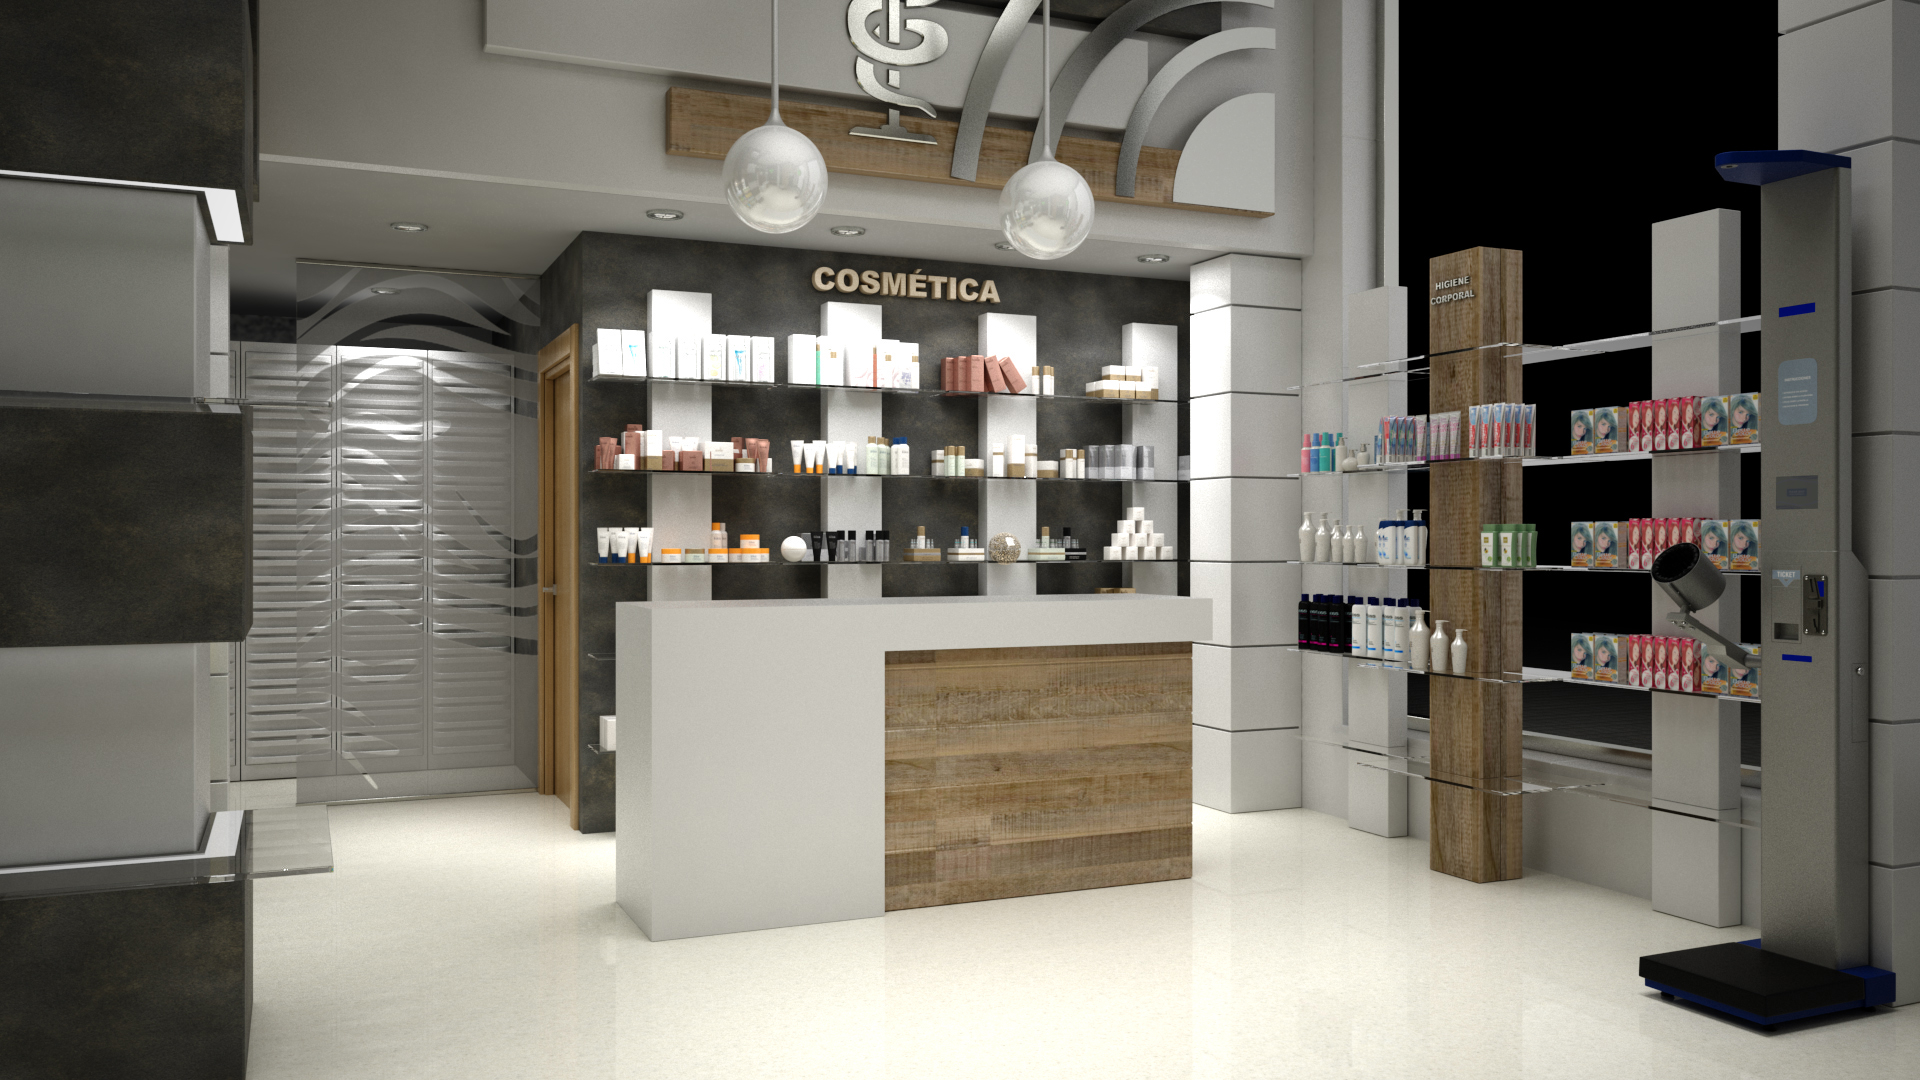 Design of commercial premises for Pharmacy in 3d max vray 3.0 image